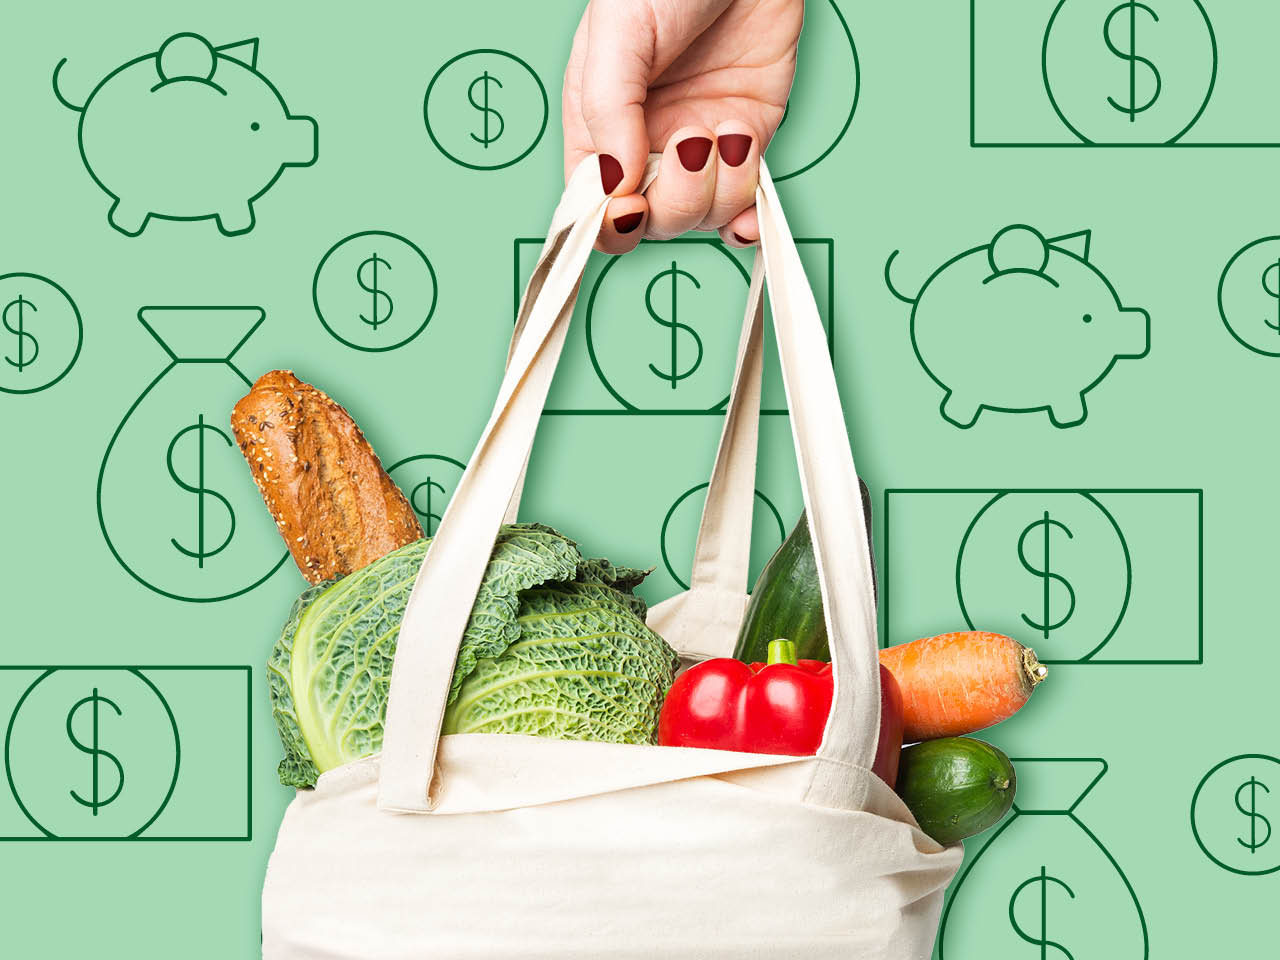 How Much Money Should You Really Be Spending On Groceries?